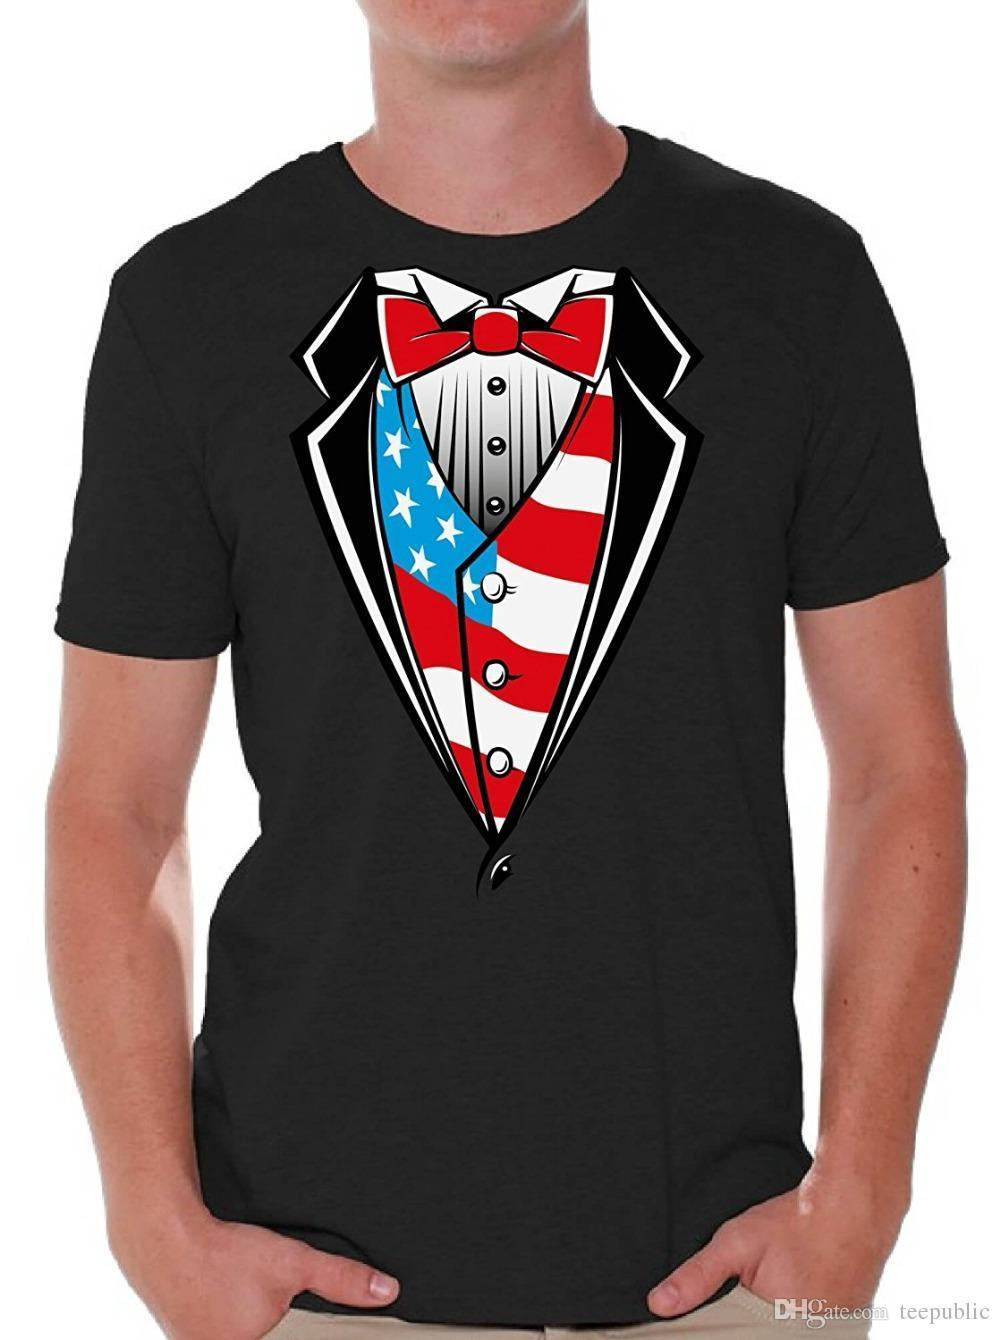 aae72098d30 Graphic T Shirts Crew Neck Men S Tuxedo American Flag T Shirt Tops Usa  Patriotic Men Short Tall T Shirt Designer Tee Best T Shirt Online From  Amesion68